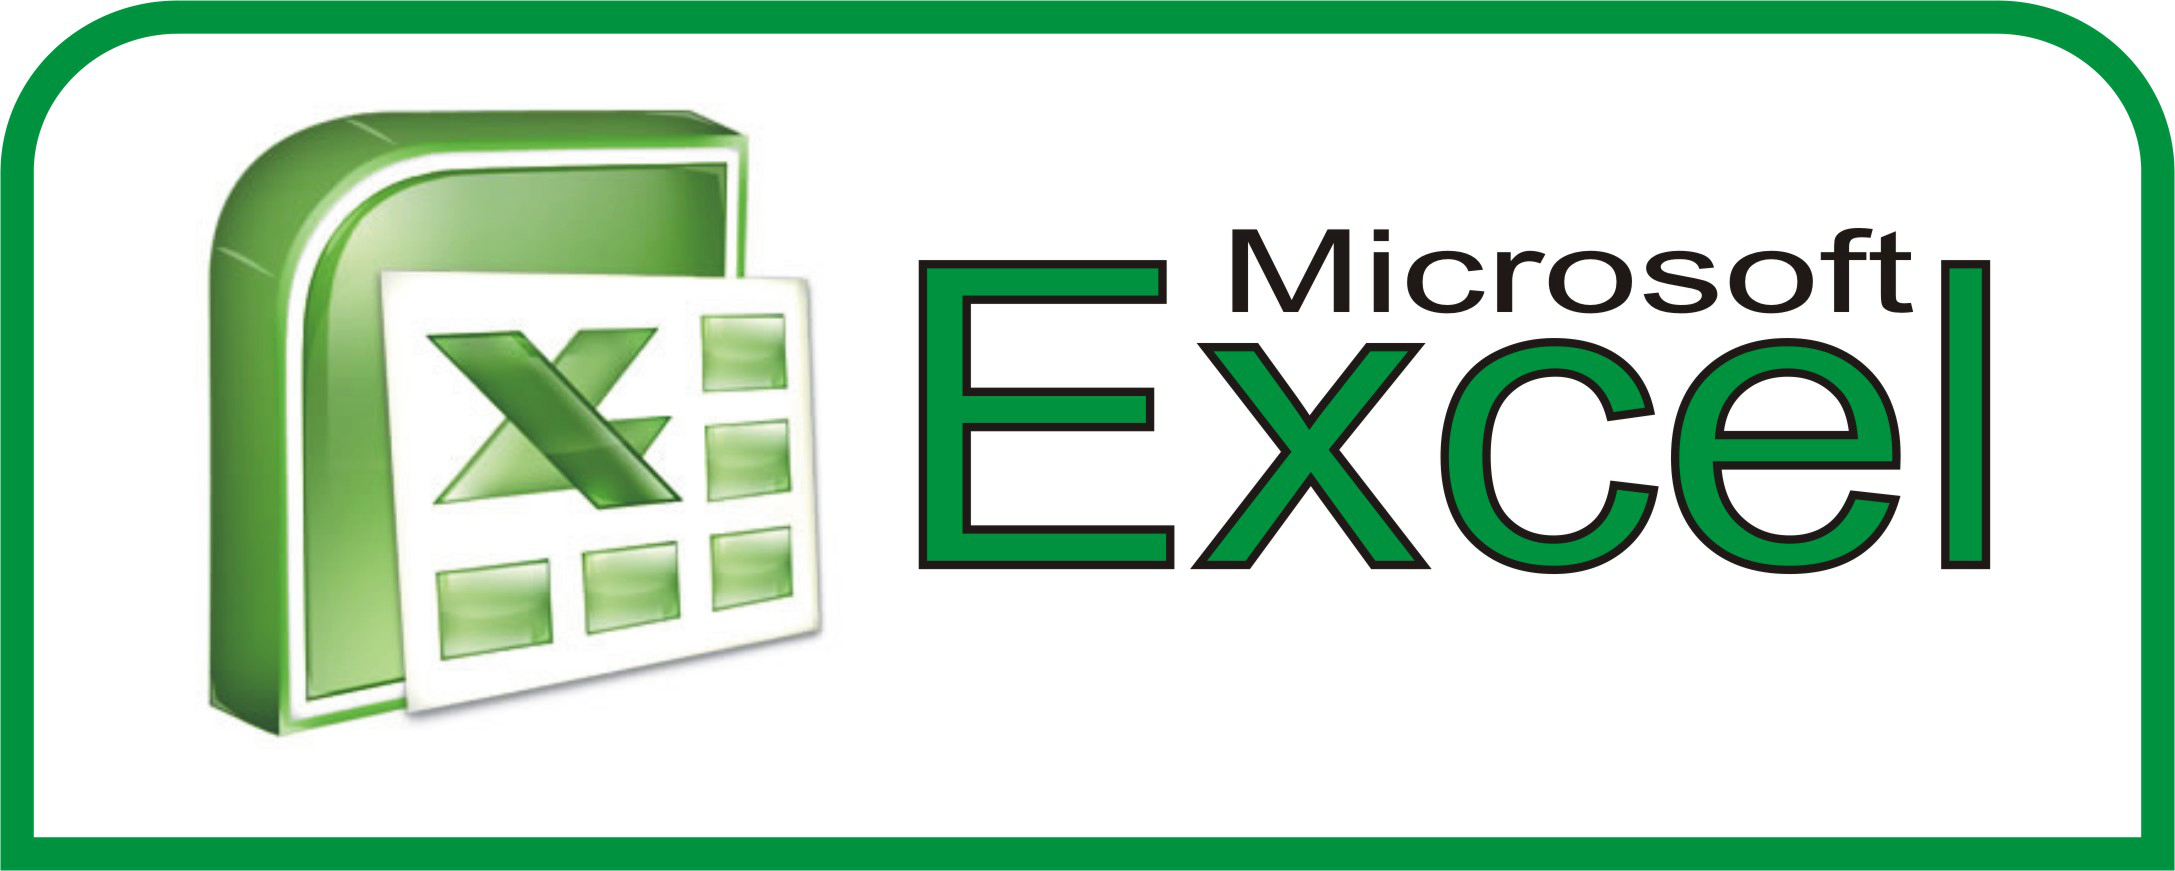 Ediblewildsus  Marvellous  Excel Shortcuts You Probably Didnt Know About  Techdissected With Likable Excel Multivariate Regression Besides How To Use Left Function In Excel Furthermore Excel Random Number No Repeats With Breathtaking Excel Vba Sum Range Also Map Excel Data In Addition Workforce Planning Template Excel And Excel Engineering Inc As Well As Download Microsoft Excel  Additionally Download Solver For Excel From Techdissectedcom With Ediblewildsus  Likable  Excel Shortcuts You Probably Didnt Know About  Techdissected With Breathtaking Excel Multivariate Regression Besides How To Use Left Function In Excel Furthermore Excel Random Number No Repeats And Marvellous Excel Vba Sum Range Also Map Excel Data In Addition Workforce Planning Template Excel From Techdissectedcom